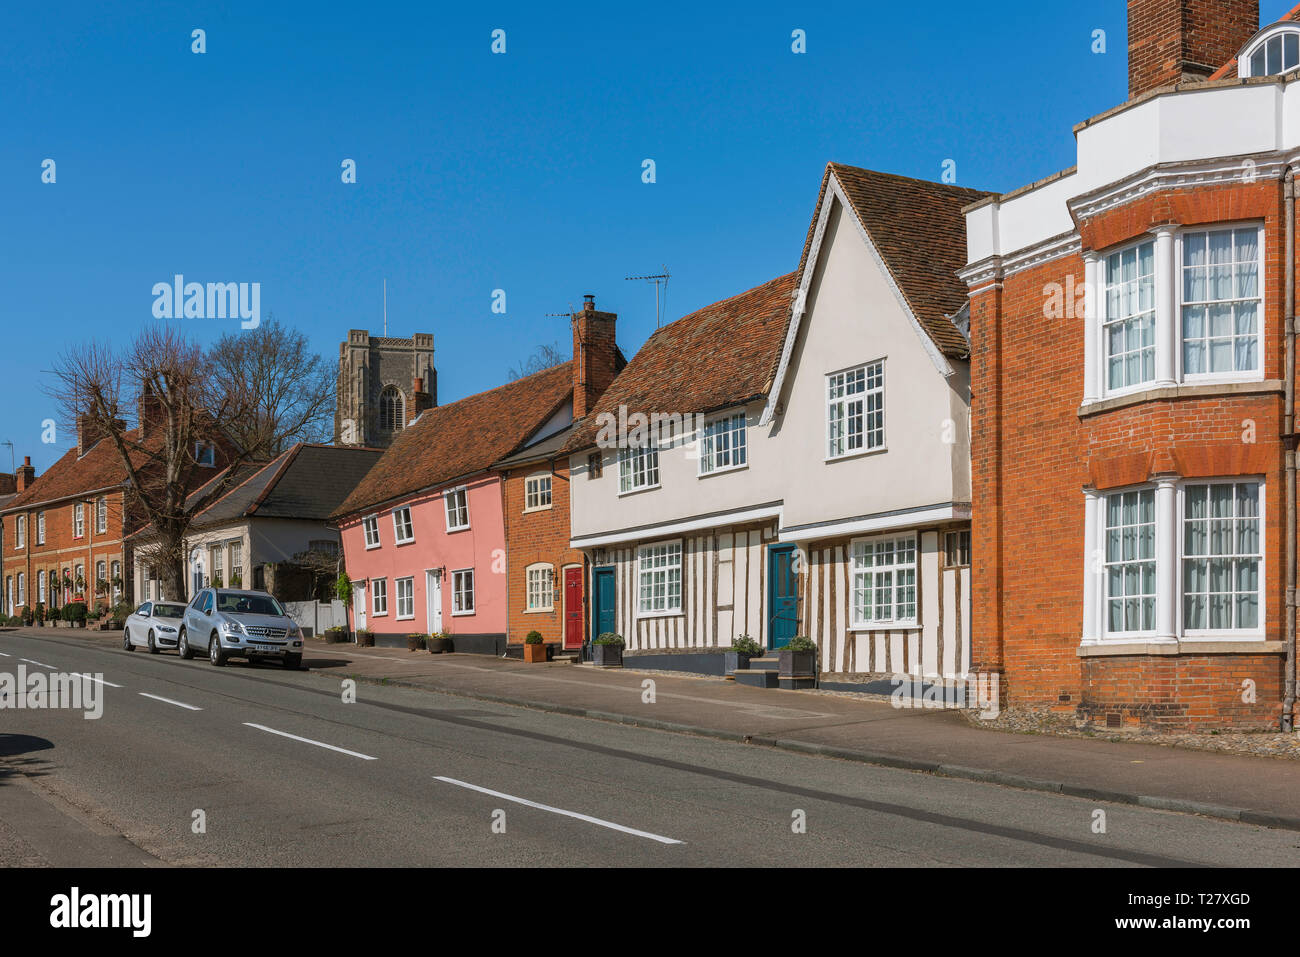 Lavenham Suffolk, view in summer of historic buildings lining the south end of the High Street in Lavenham, Babergh district, Suffolk, England, UK. - Stock Image